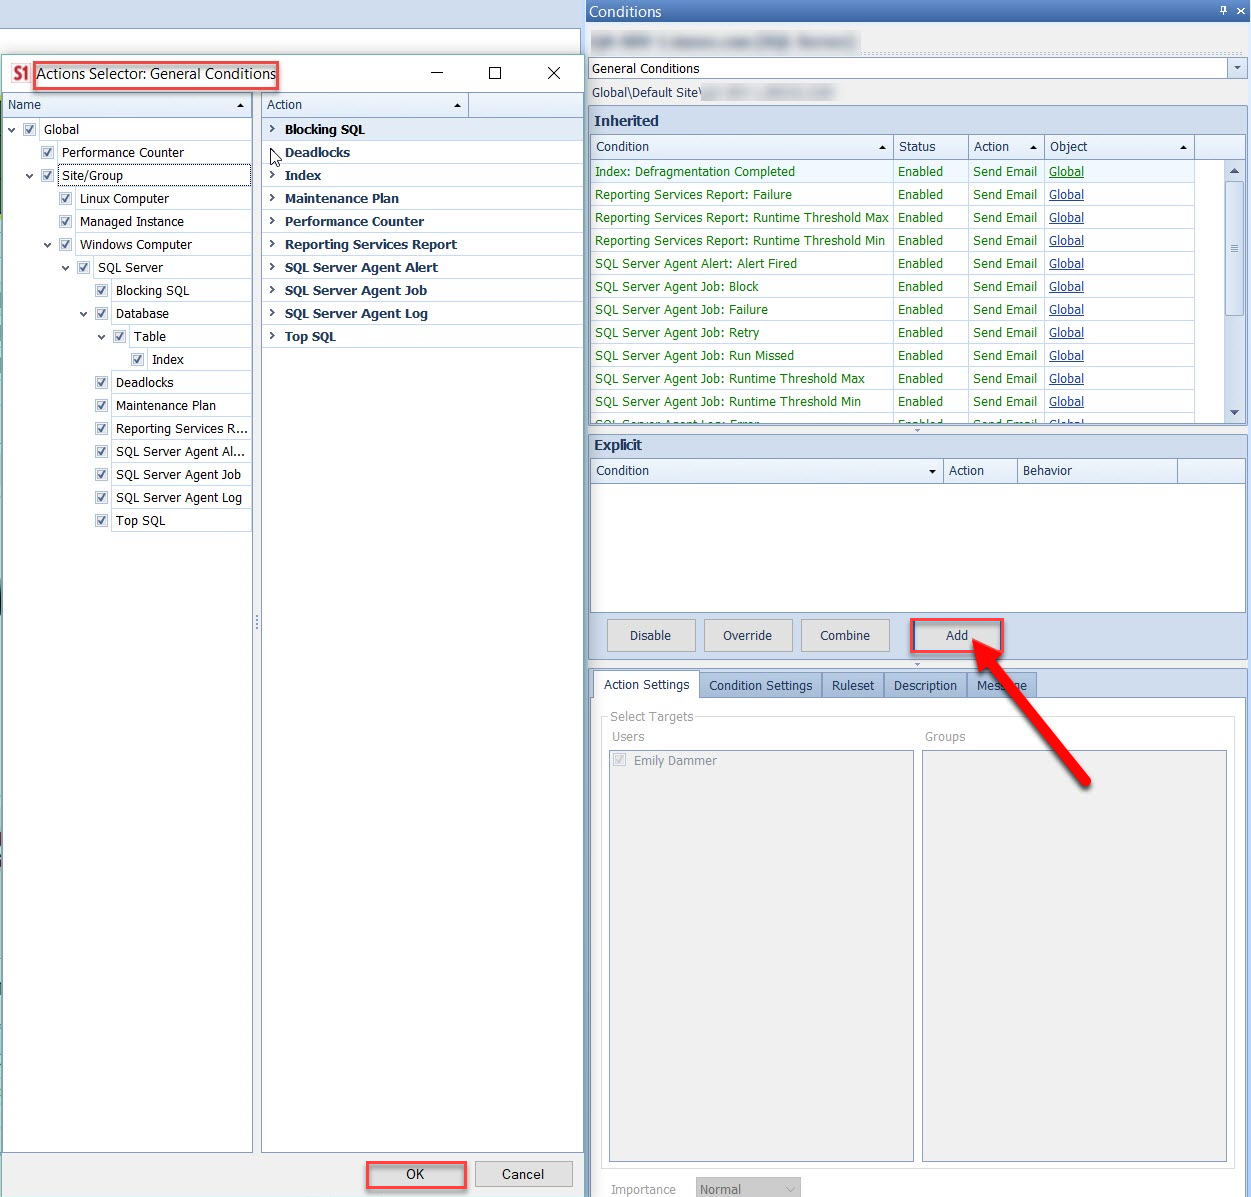 SentryOne SQL Server Actions Selector Window